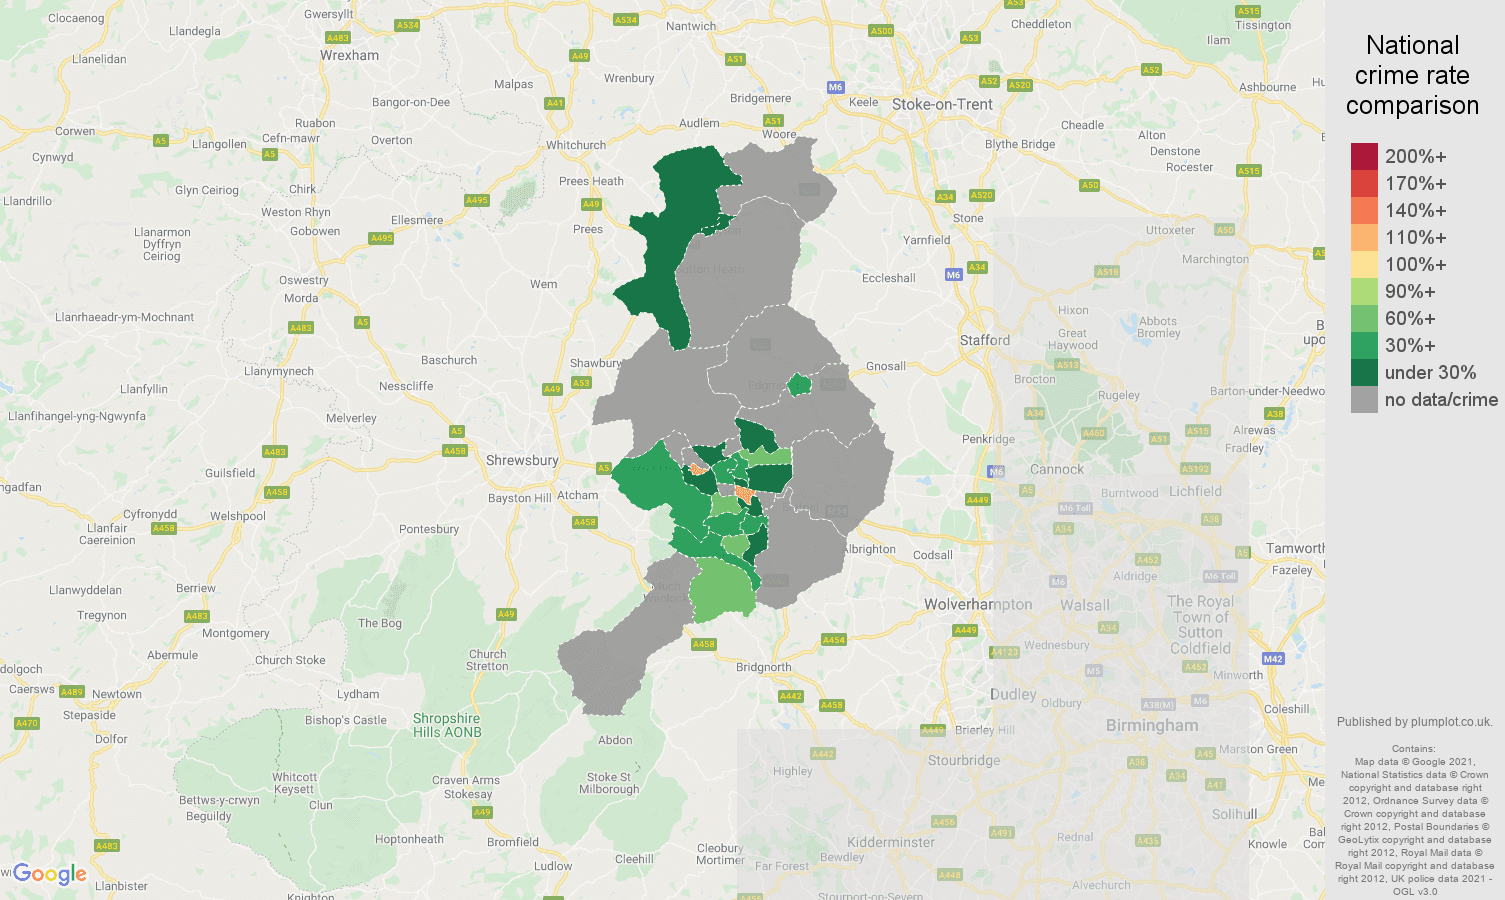 Telford bicycle theft crime rate comparison map